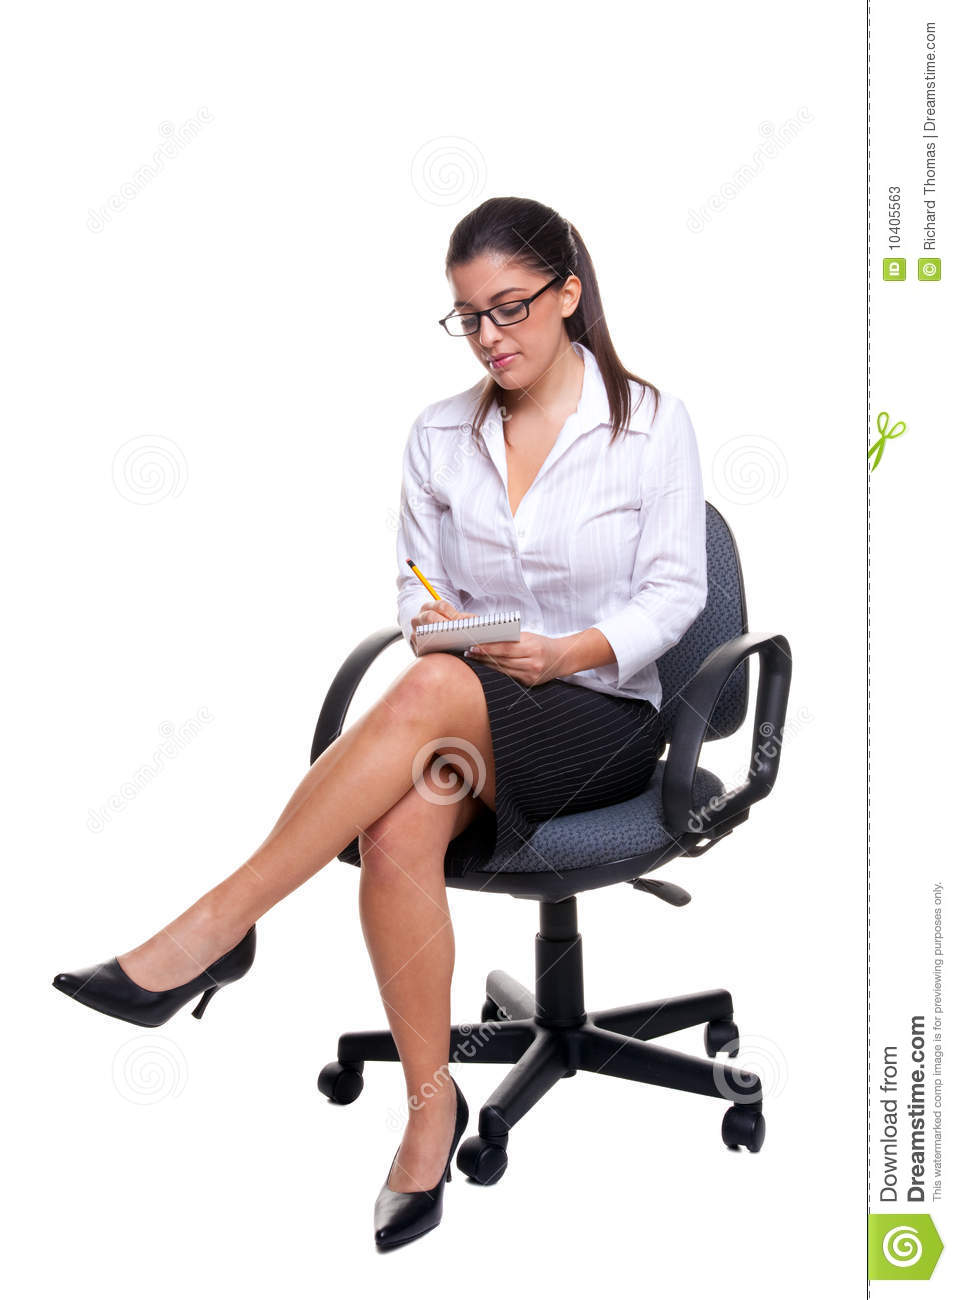 Secretary Sat On An Office Chair Taking Notes. Stock Photos - Image